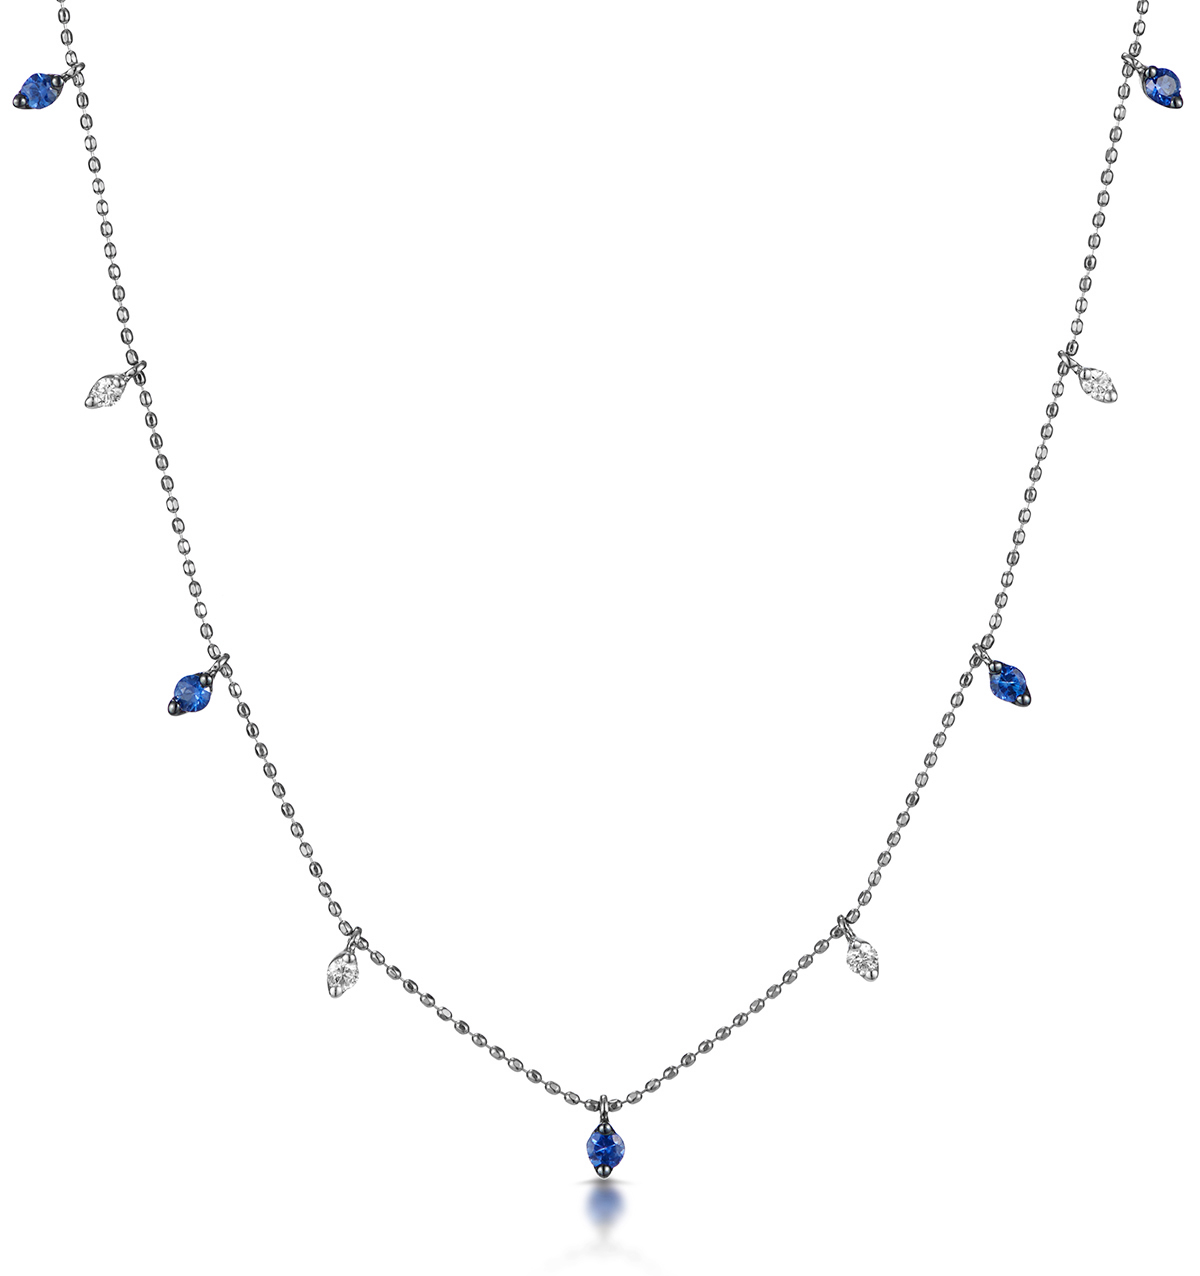 Sapphire and Diamond Necklace in 18K White Gold - Vivara Collection